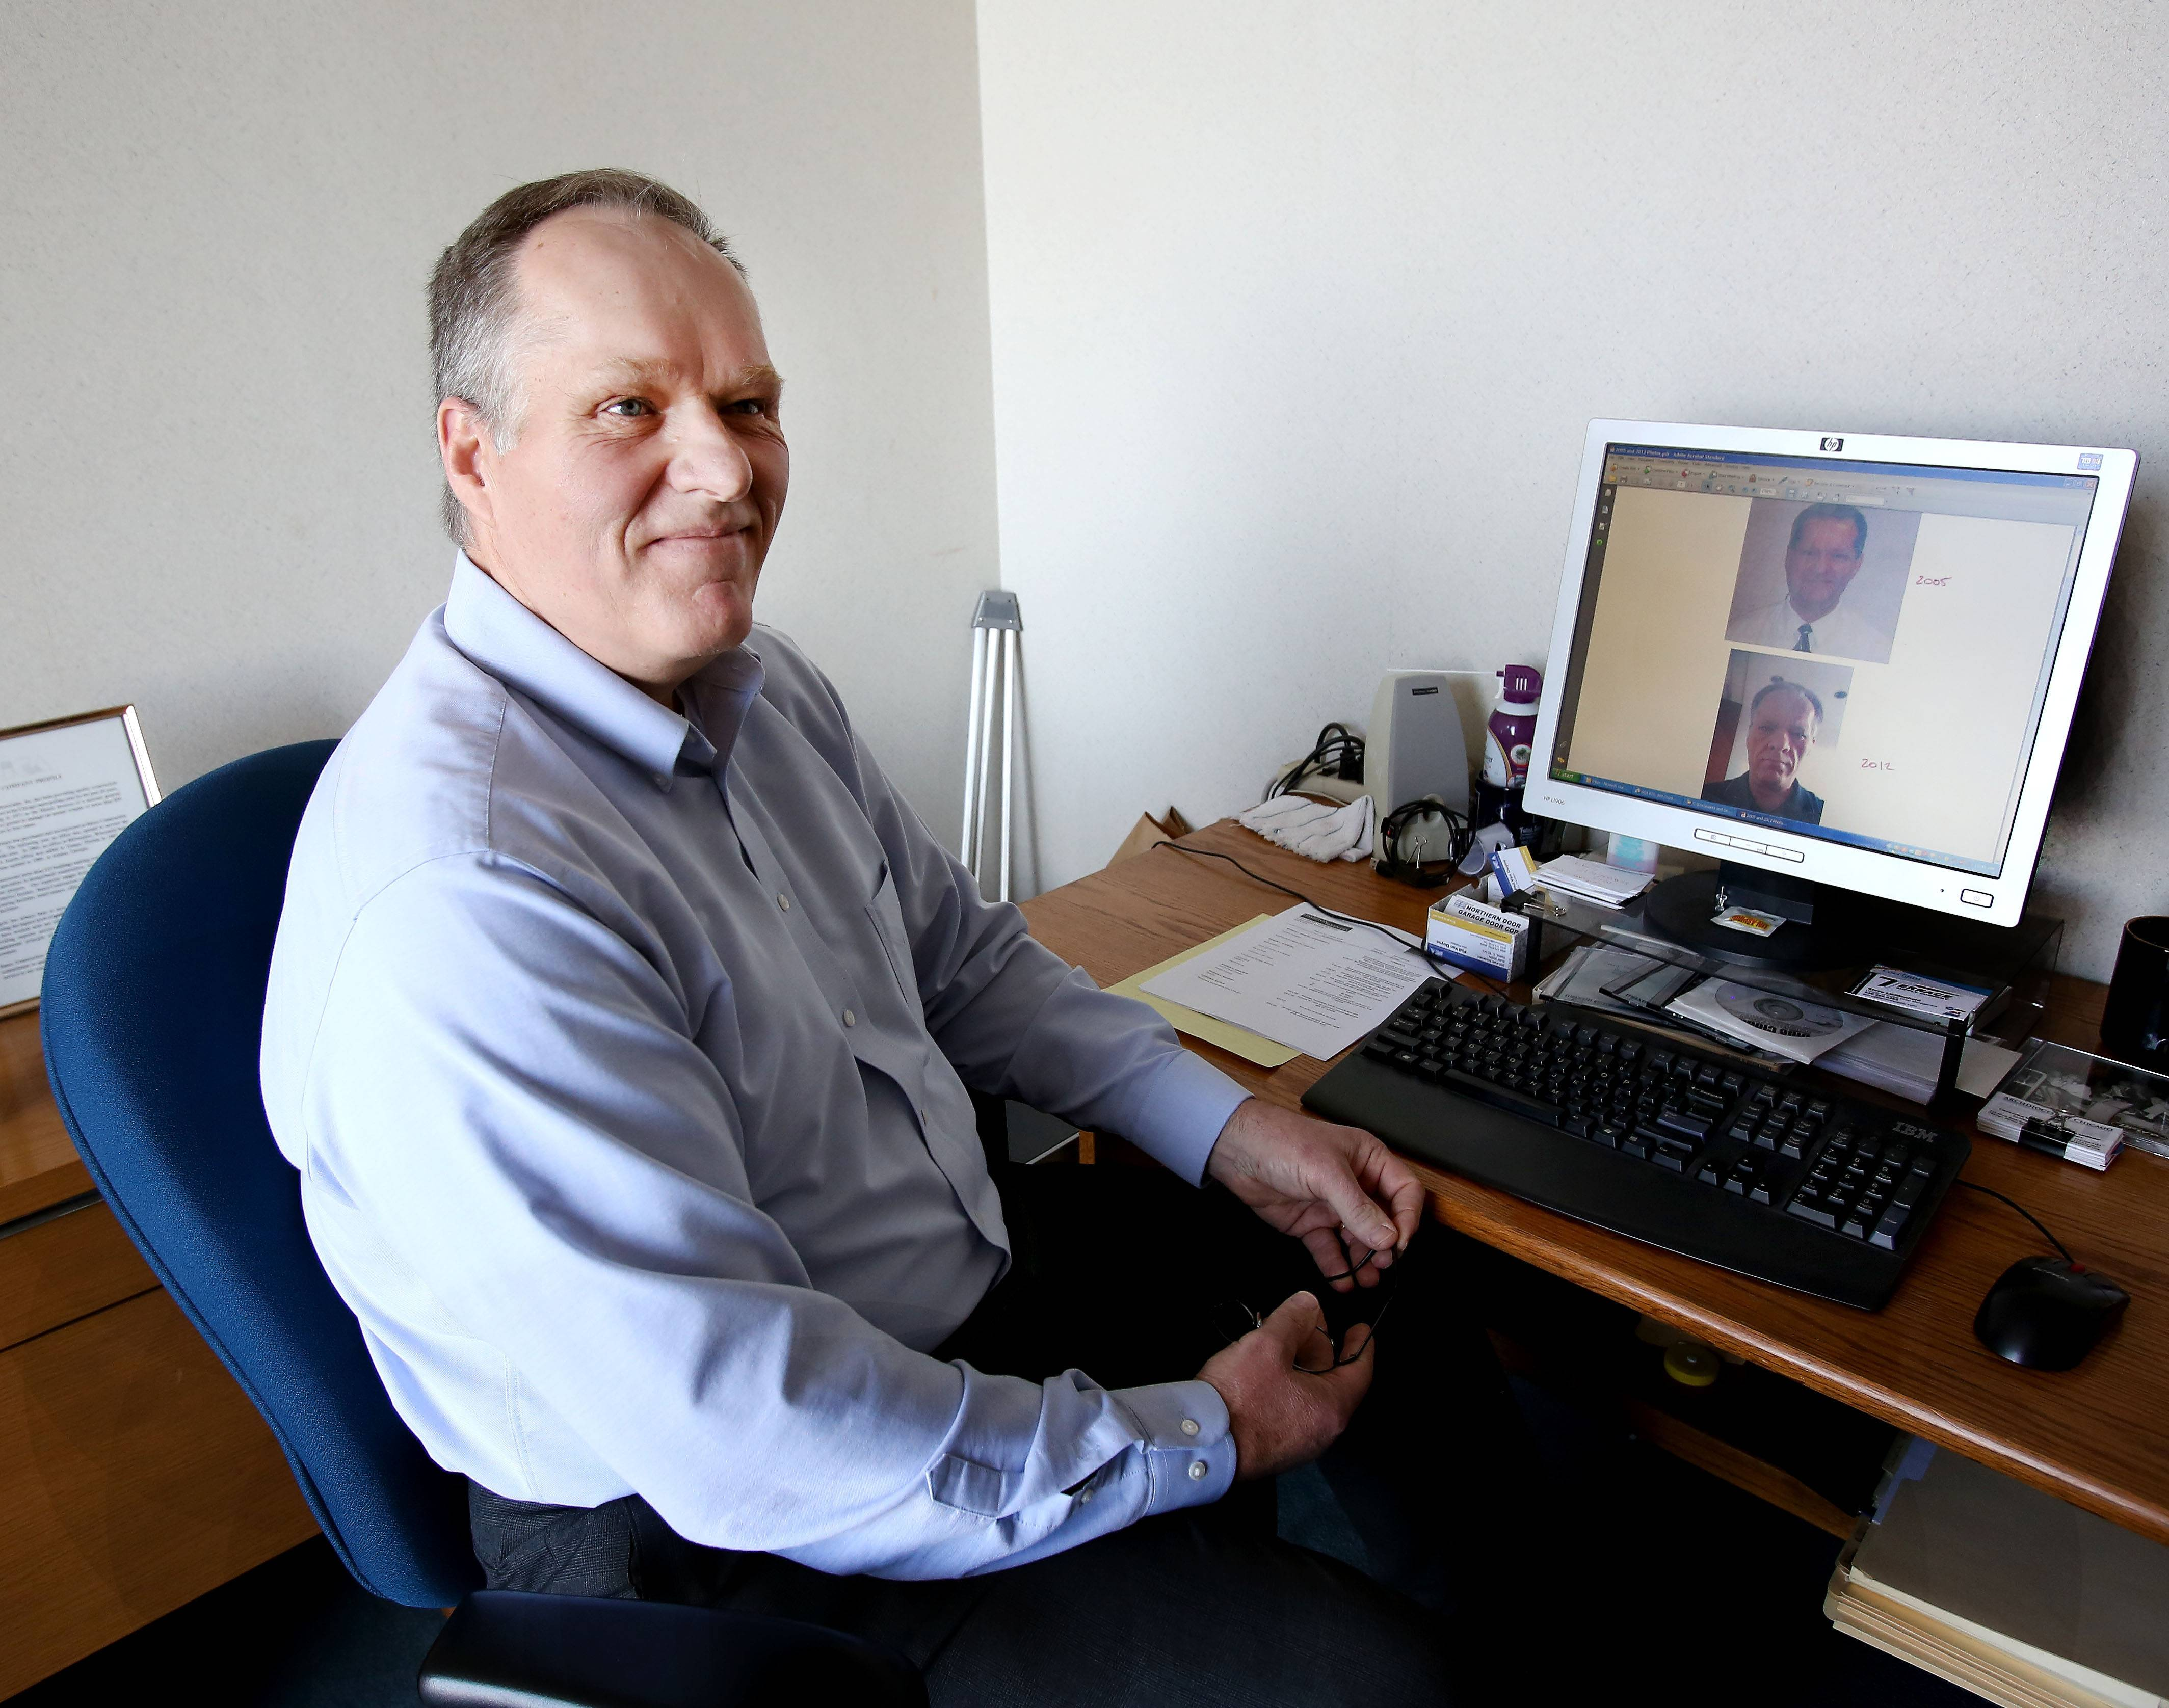 In his office as president of Itasca Construction Associates, Phil Van Duyne calls up the photographs on his computer screen that show the changes in his appearance caused by a tumor on his pituitary gland.